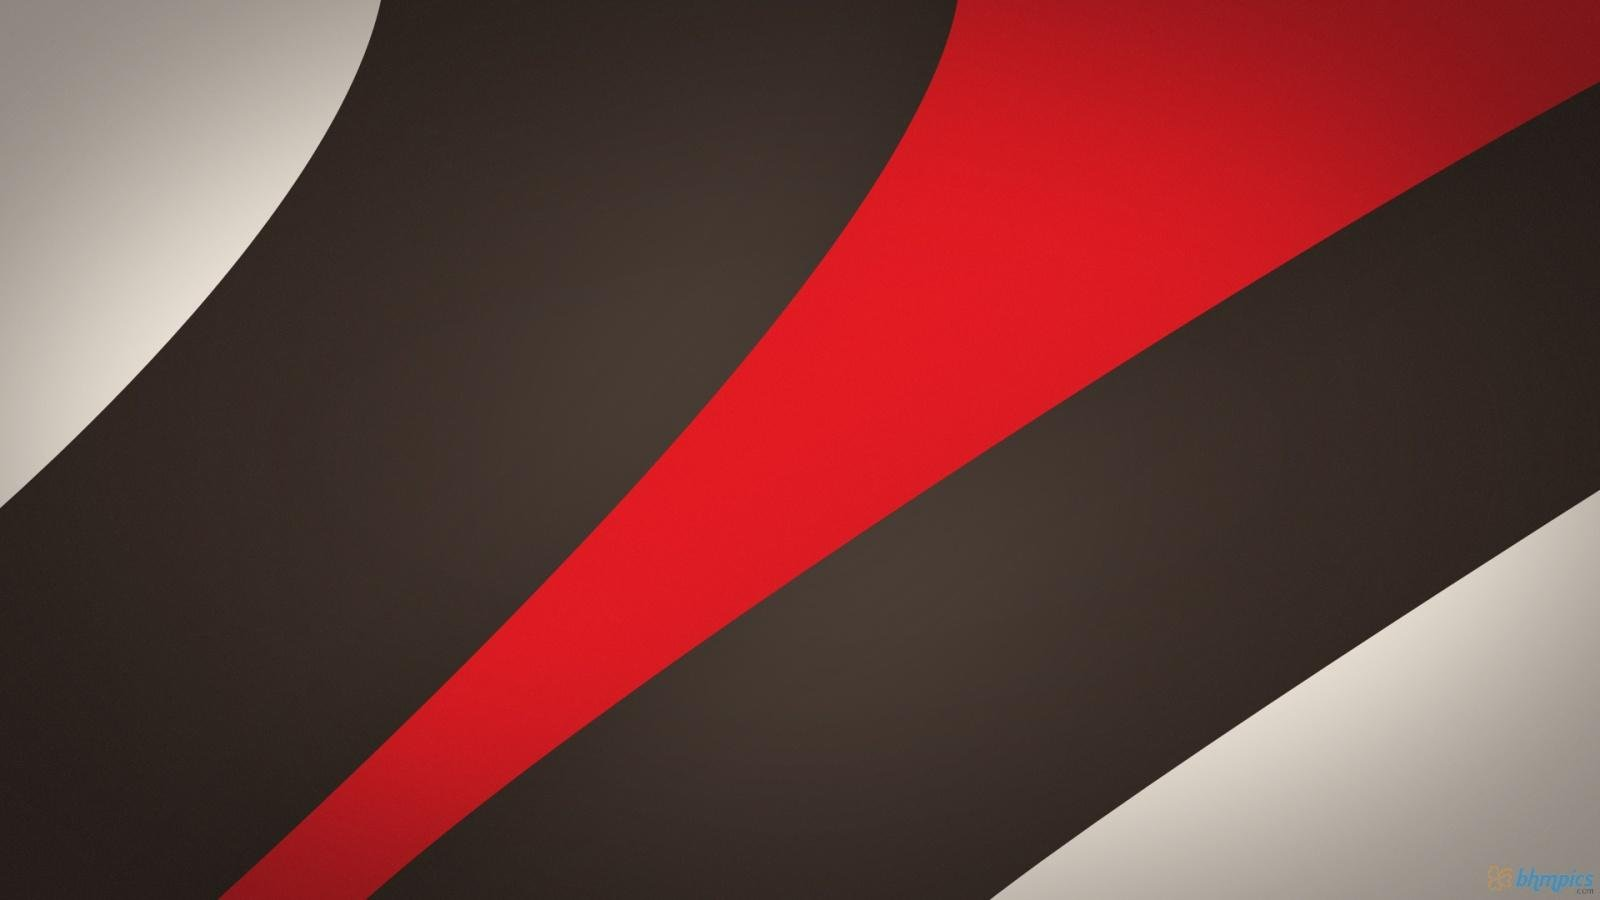 Red And Black And White Abstract Backgrounds Images Pictures   Becuo 1600x900